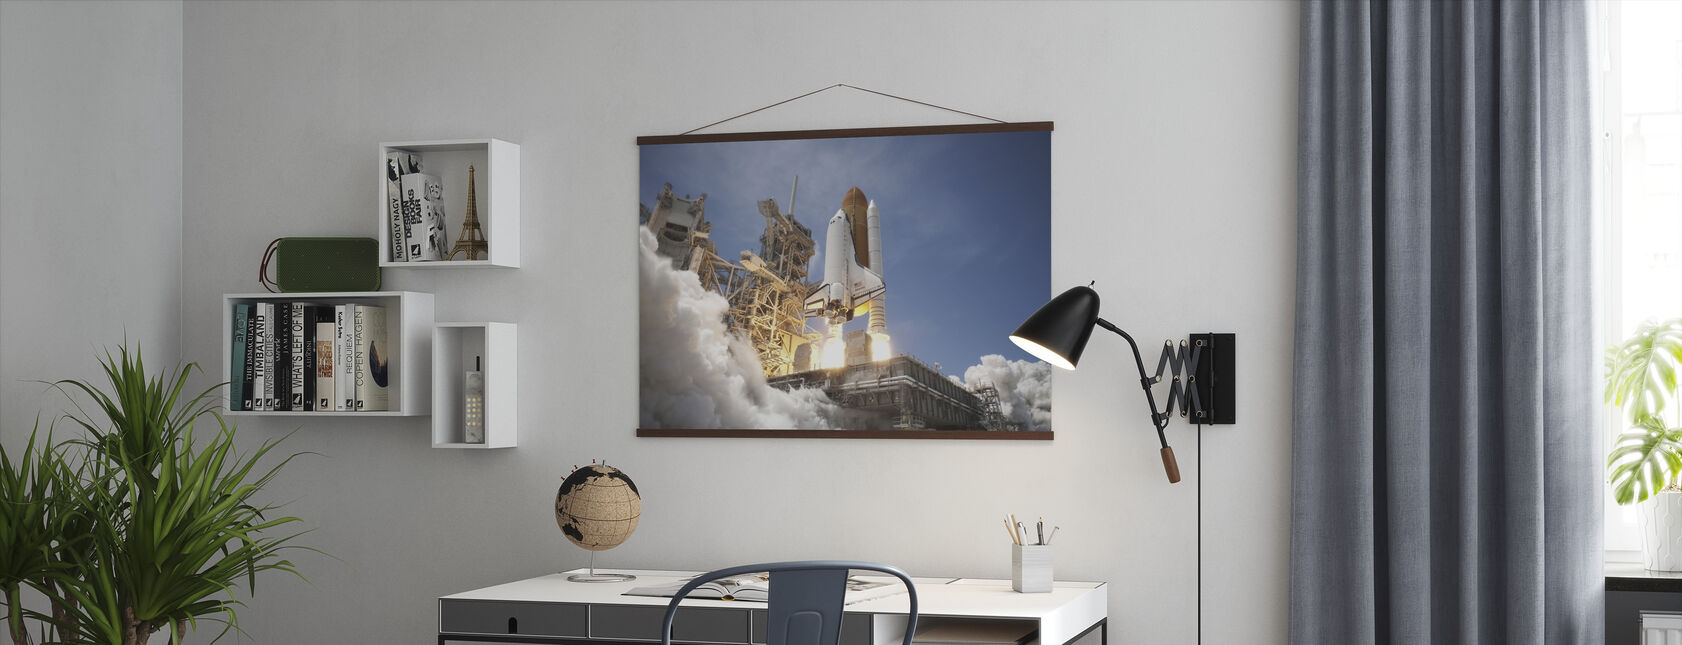 Space Shuttle - Poster - Office